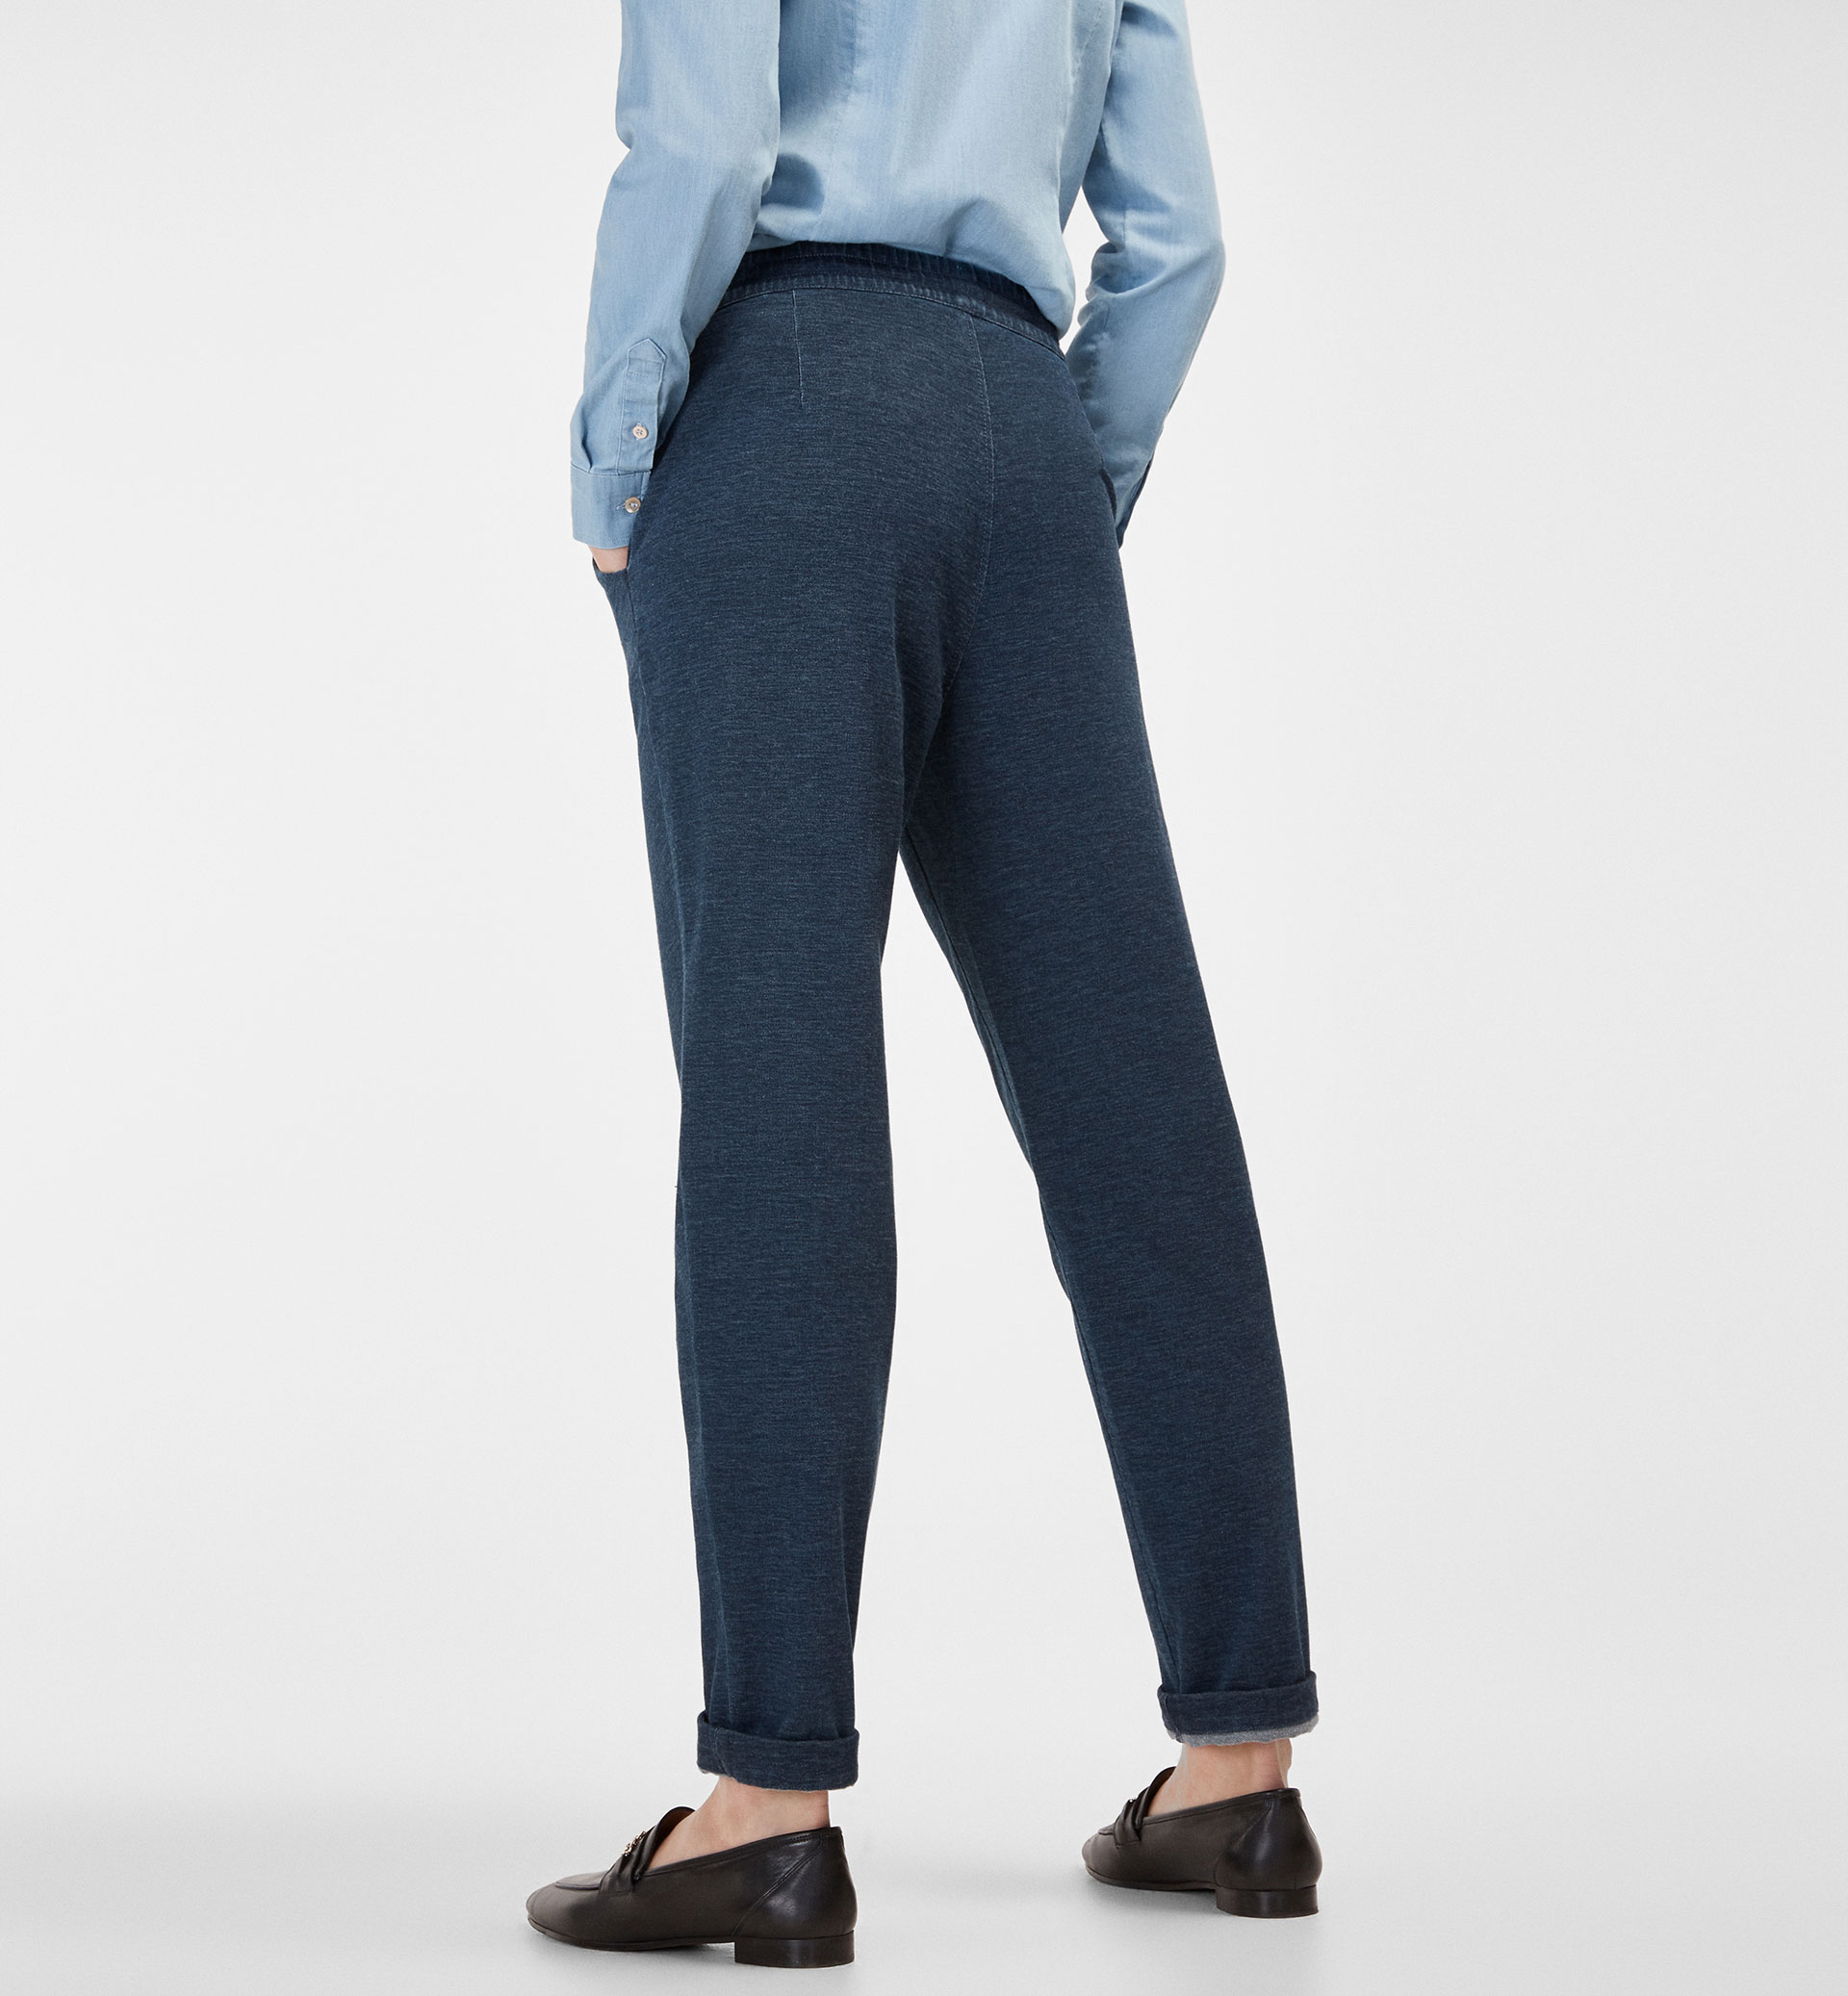 JOGGING TROUSERS WITH TURN-UP HEM DETAIL